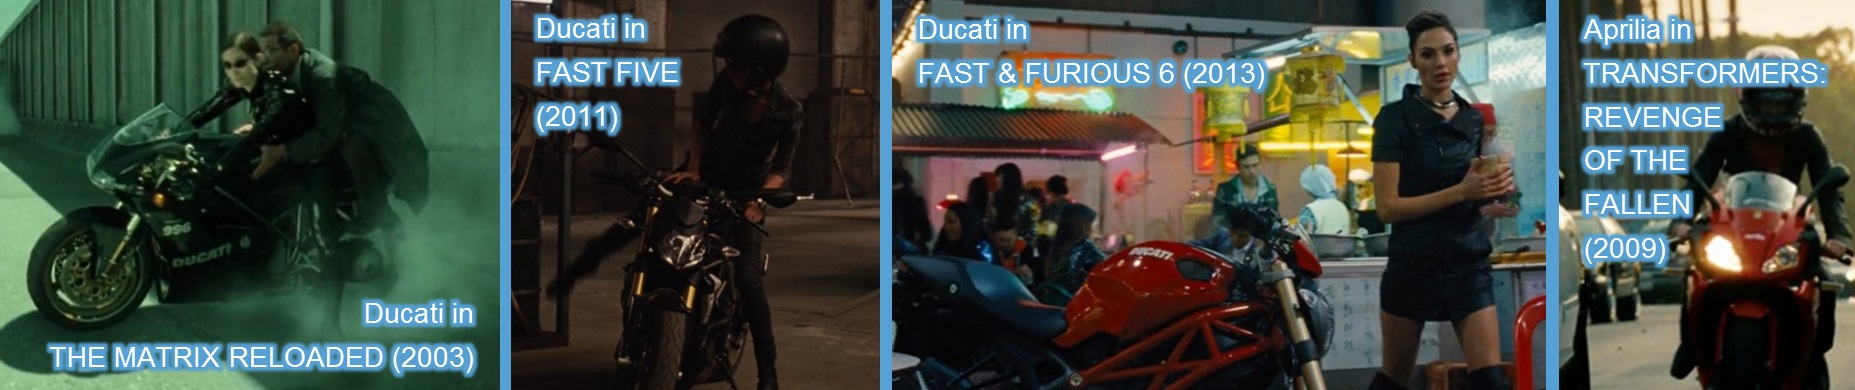 ducati aprilia entertainment movies